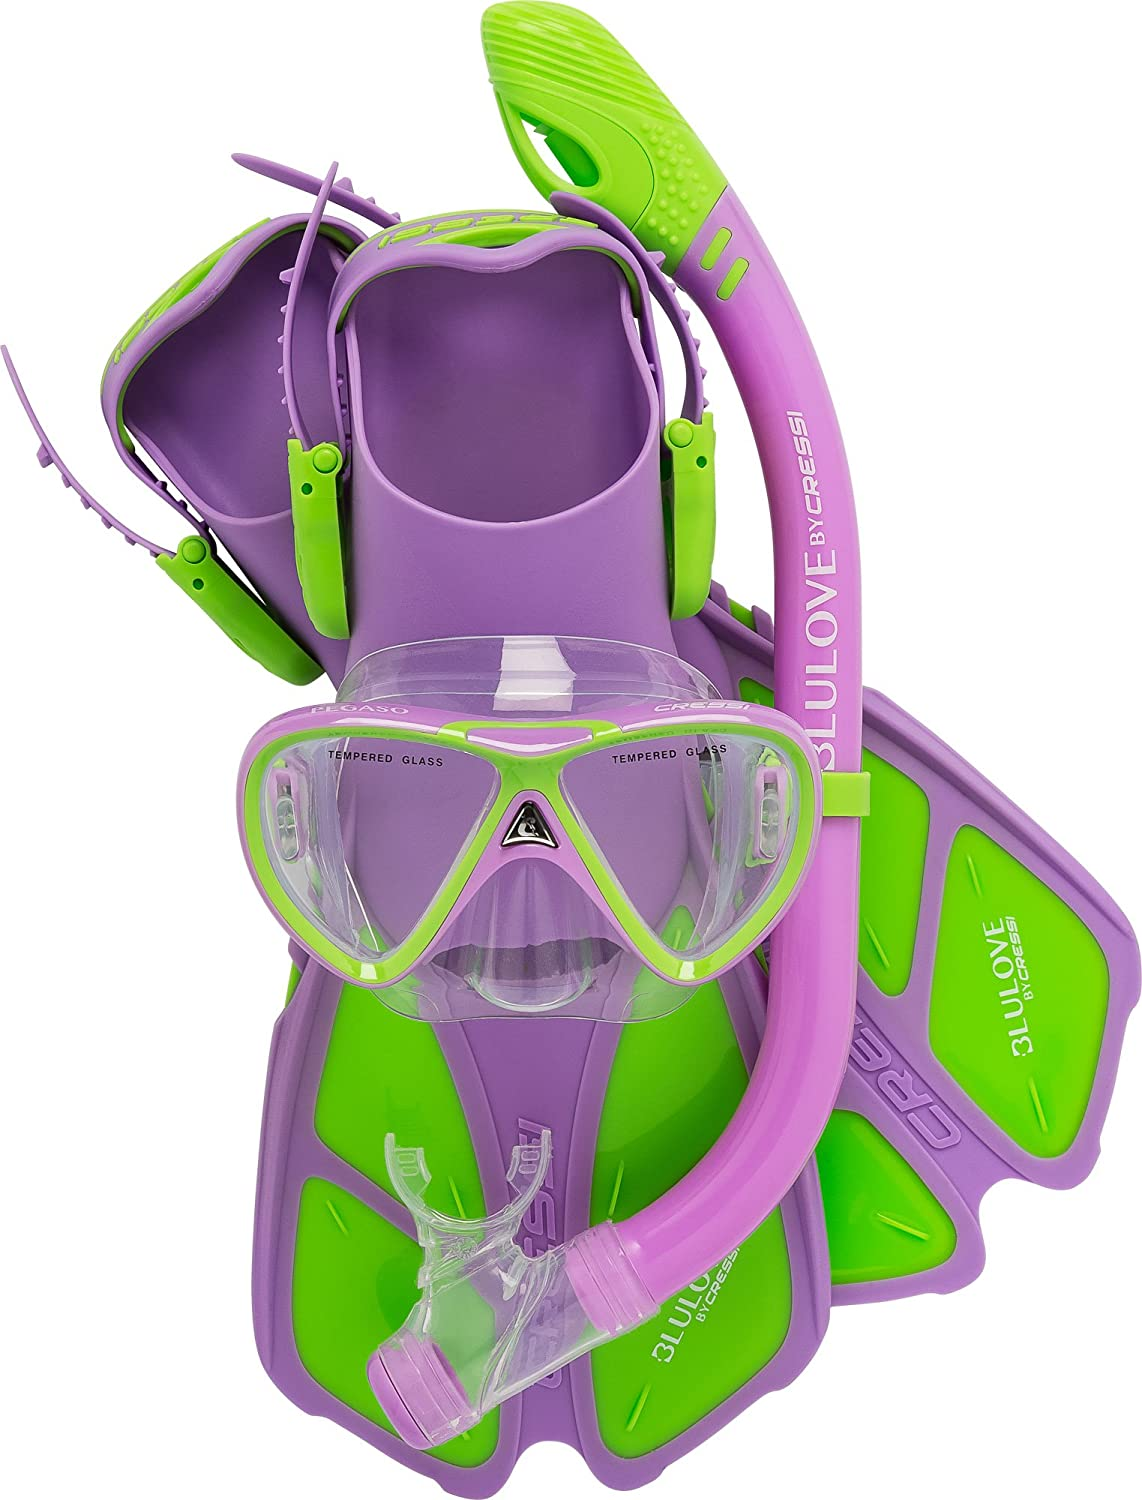 Cressi Youth Junior Snorkeling Set for kids Aged 7 to 15  Lightweight colorful Equipment   Mini Bonete Set